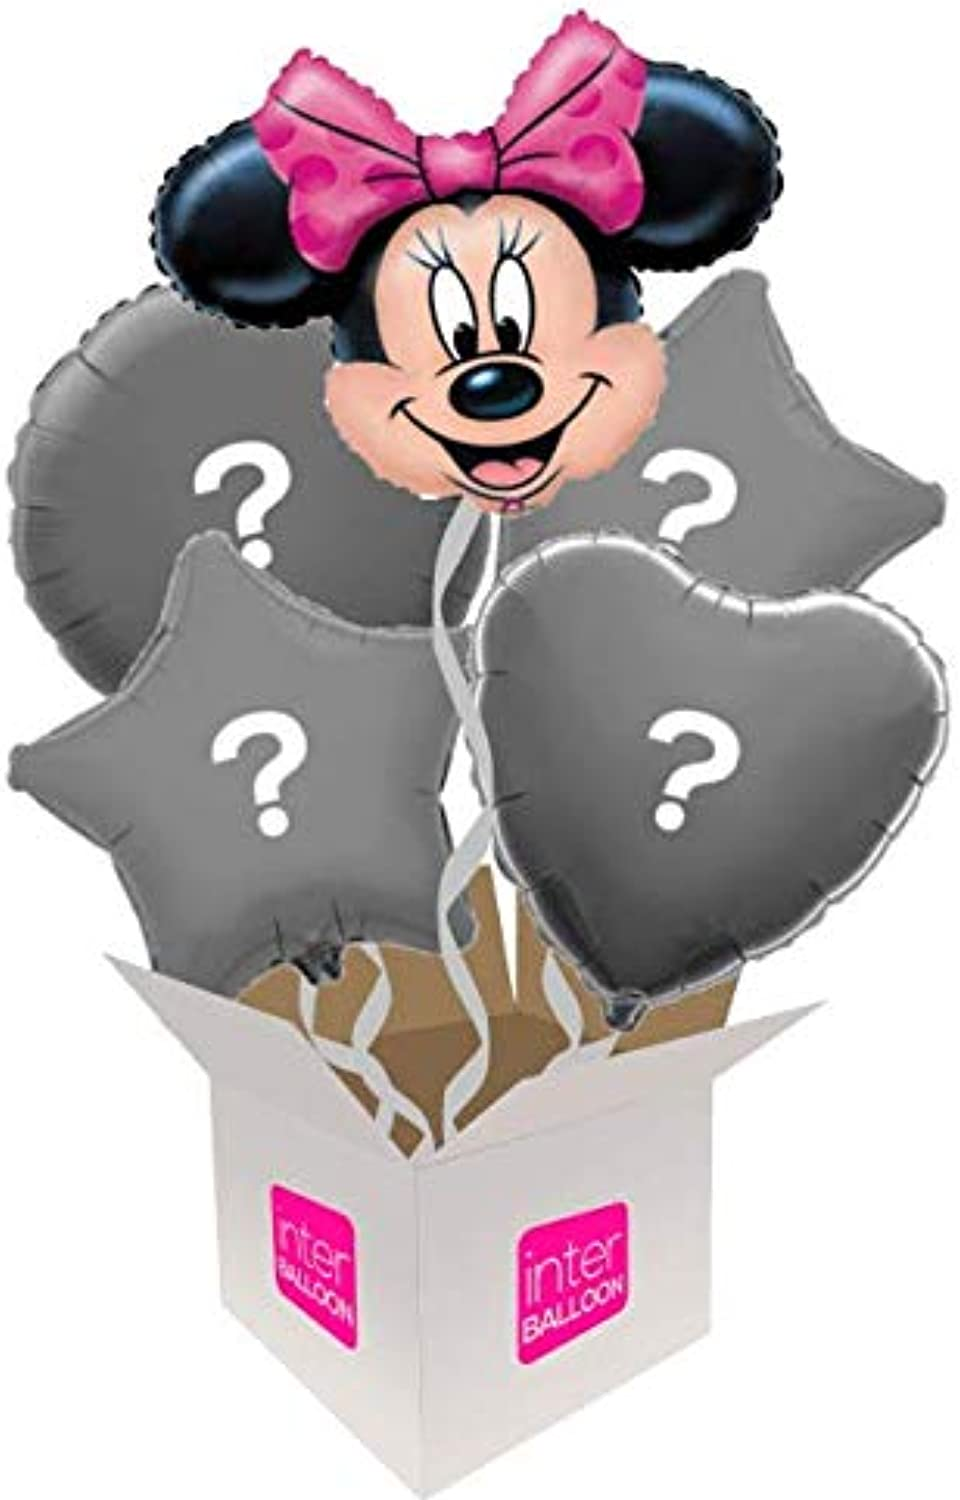 InterBalloon Helium Inflated 24  Minnie Mouse Head Balloon Delivered in a Box with 4 Extra Balloons of your choice